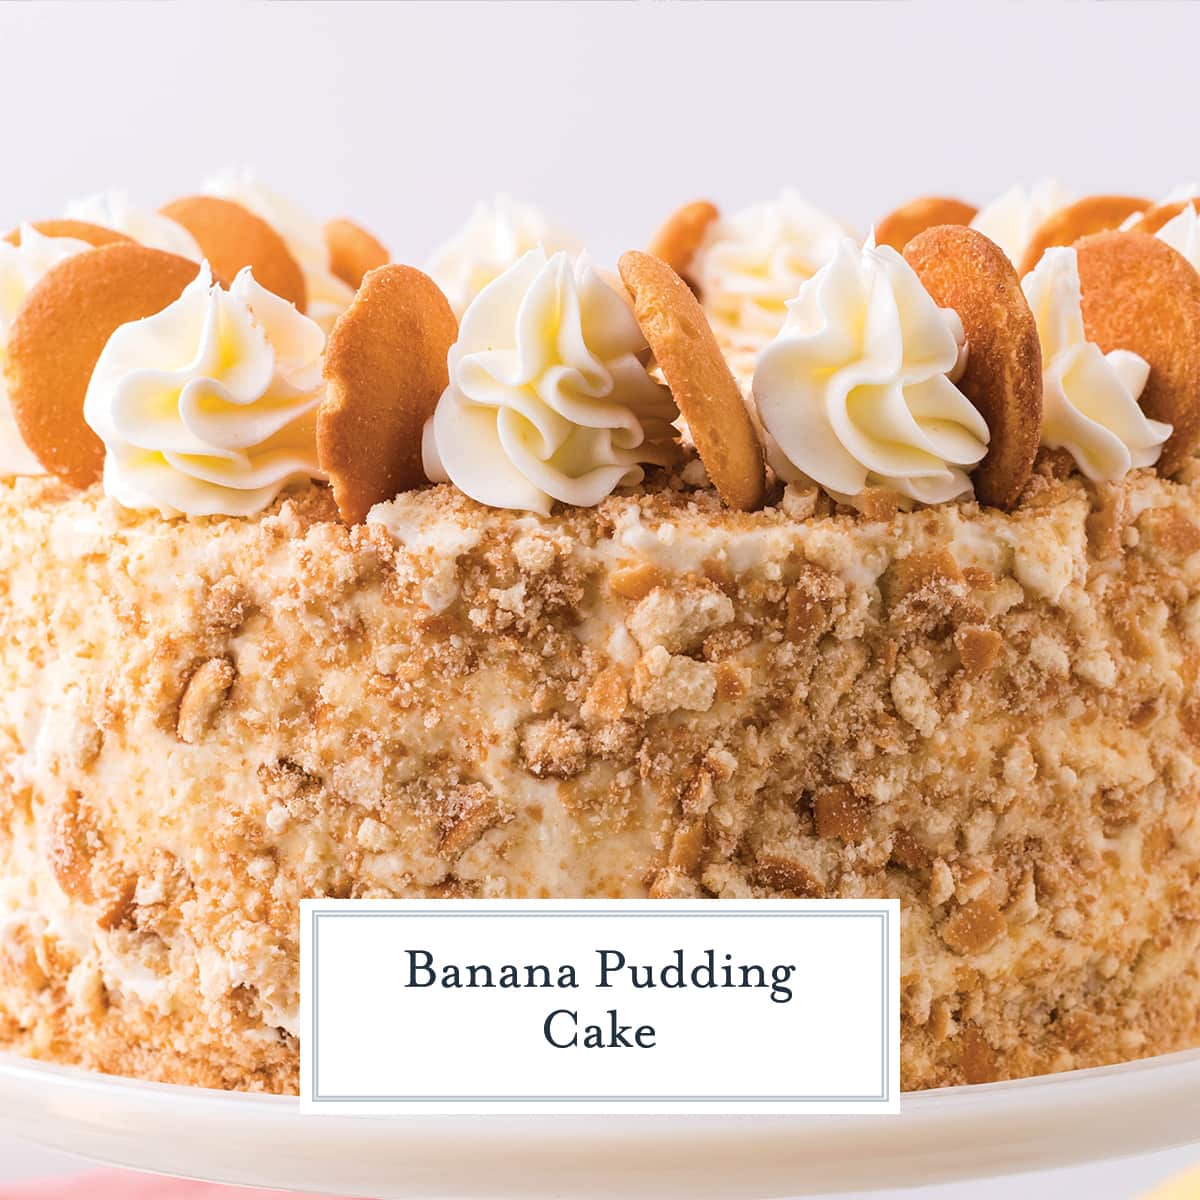 close up of nilla cookie crumbs on banana pudding layer cake